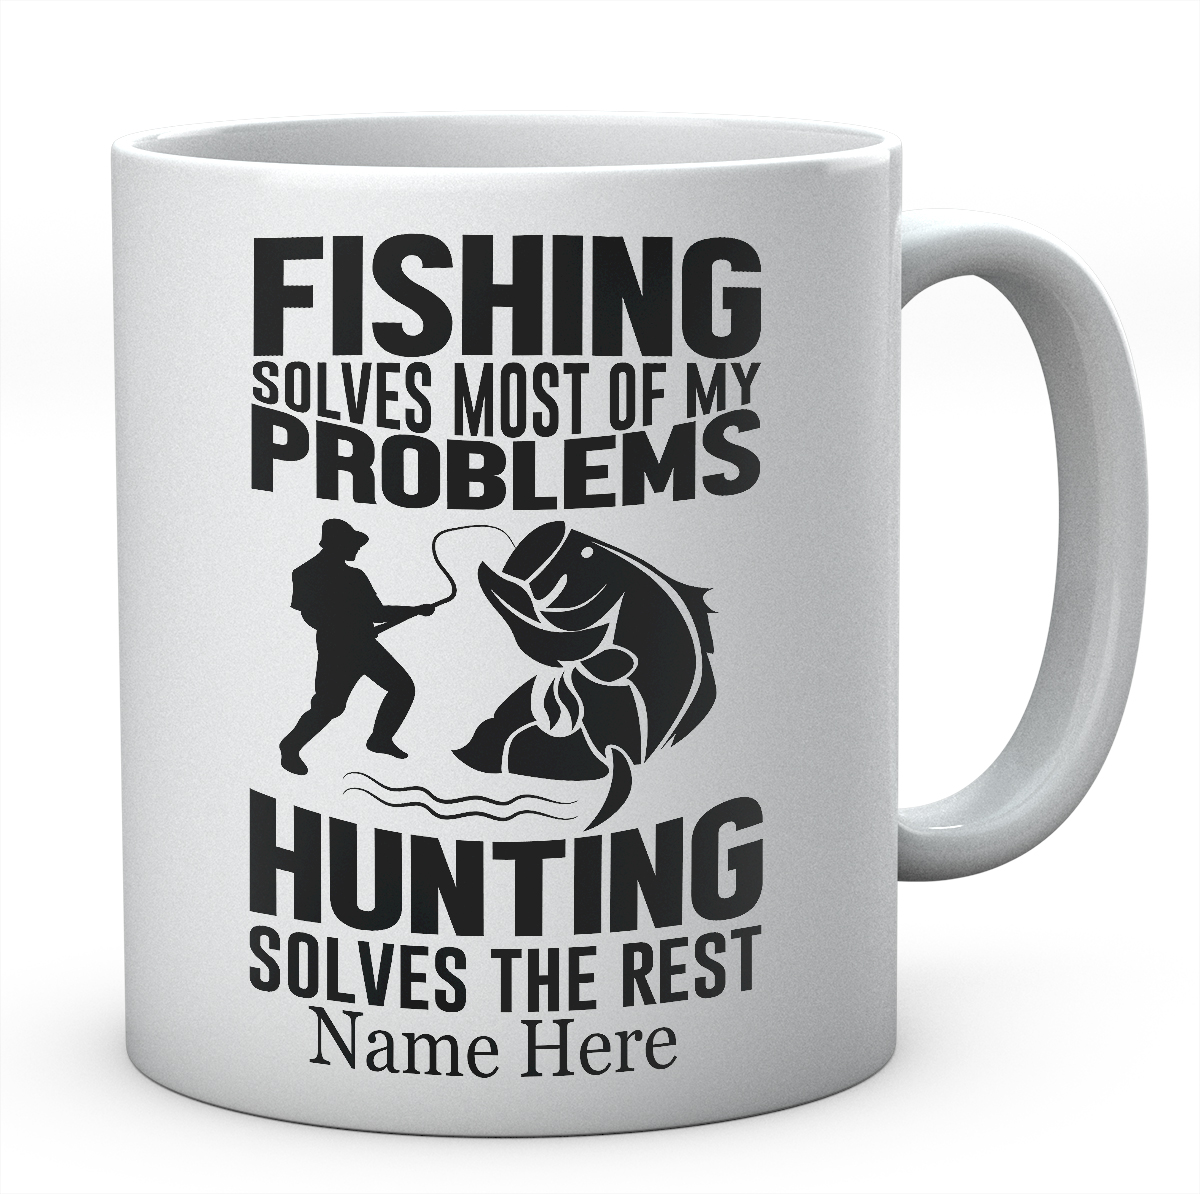 Fishing Solves Most Of My Problems-Personalised Fishing Mug